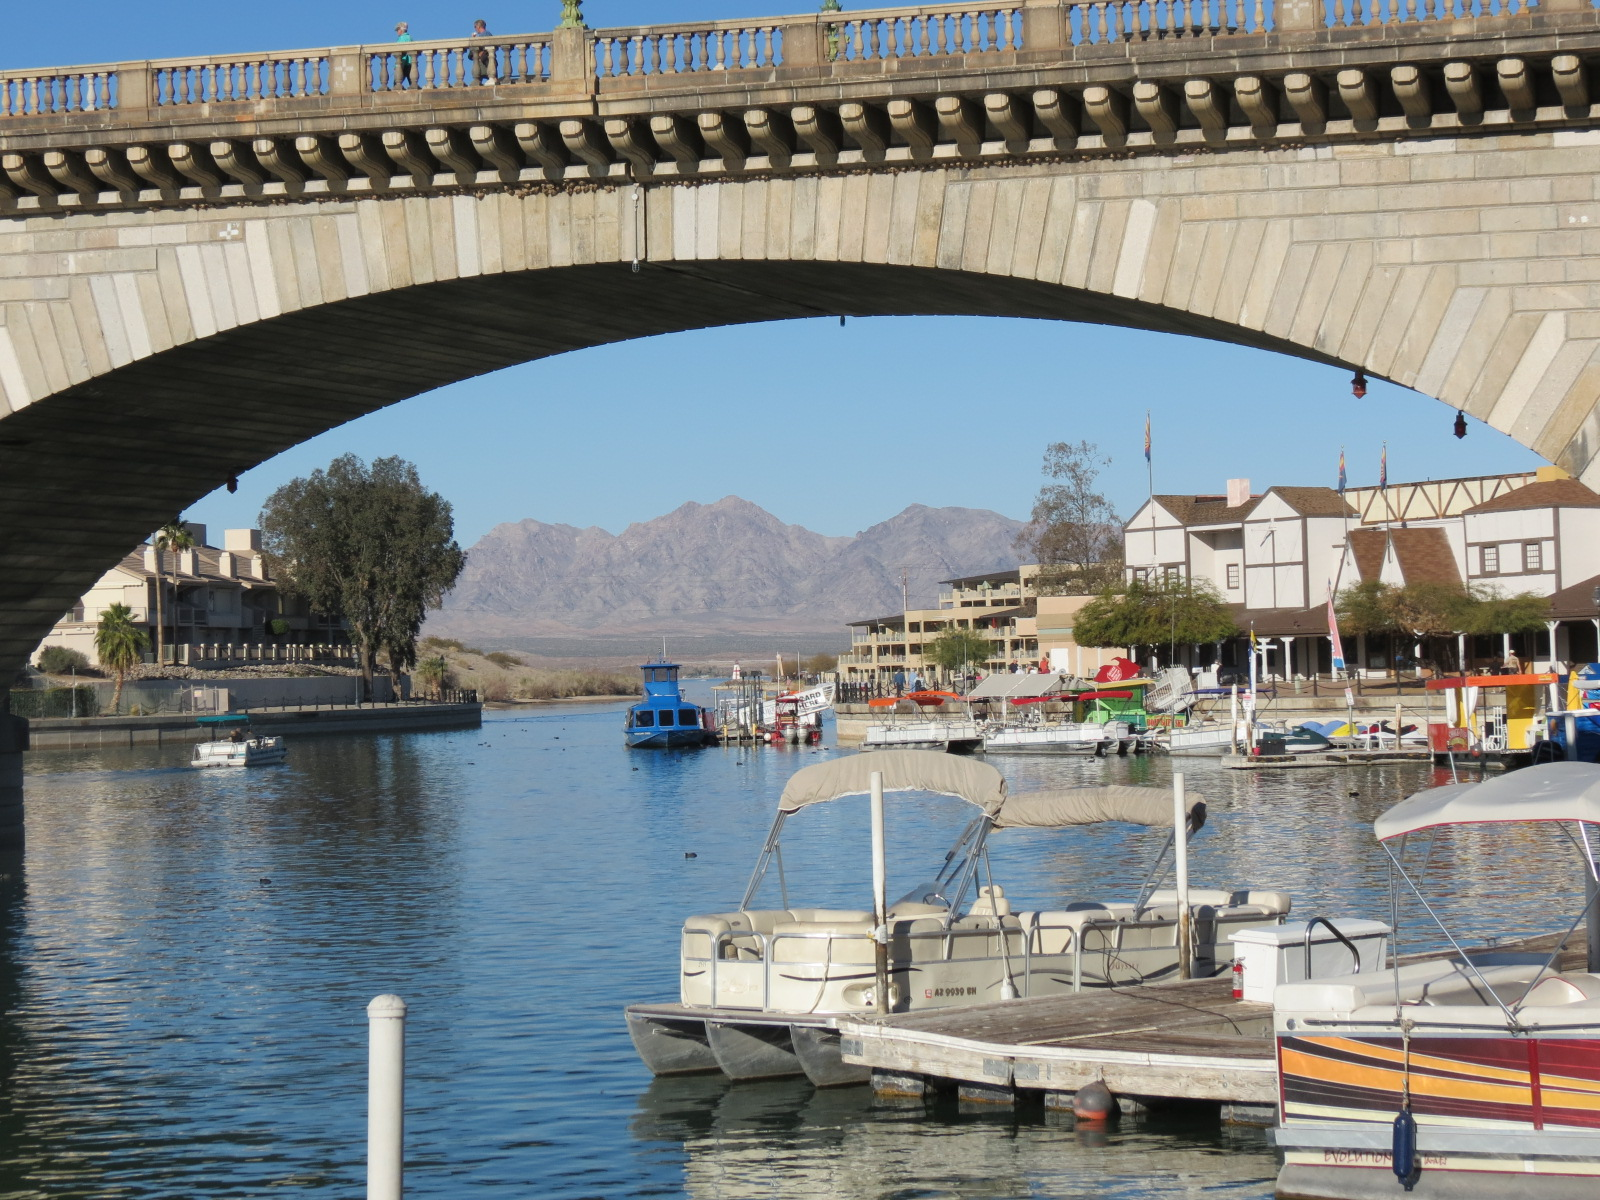 London Bridge replicate in Lake Havasu City, AZ